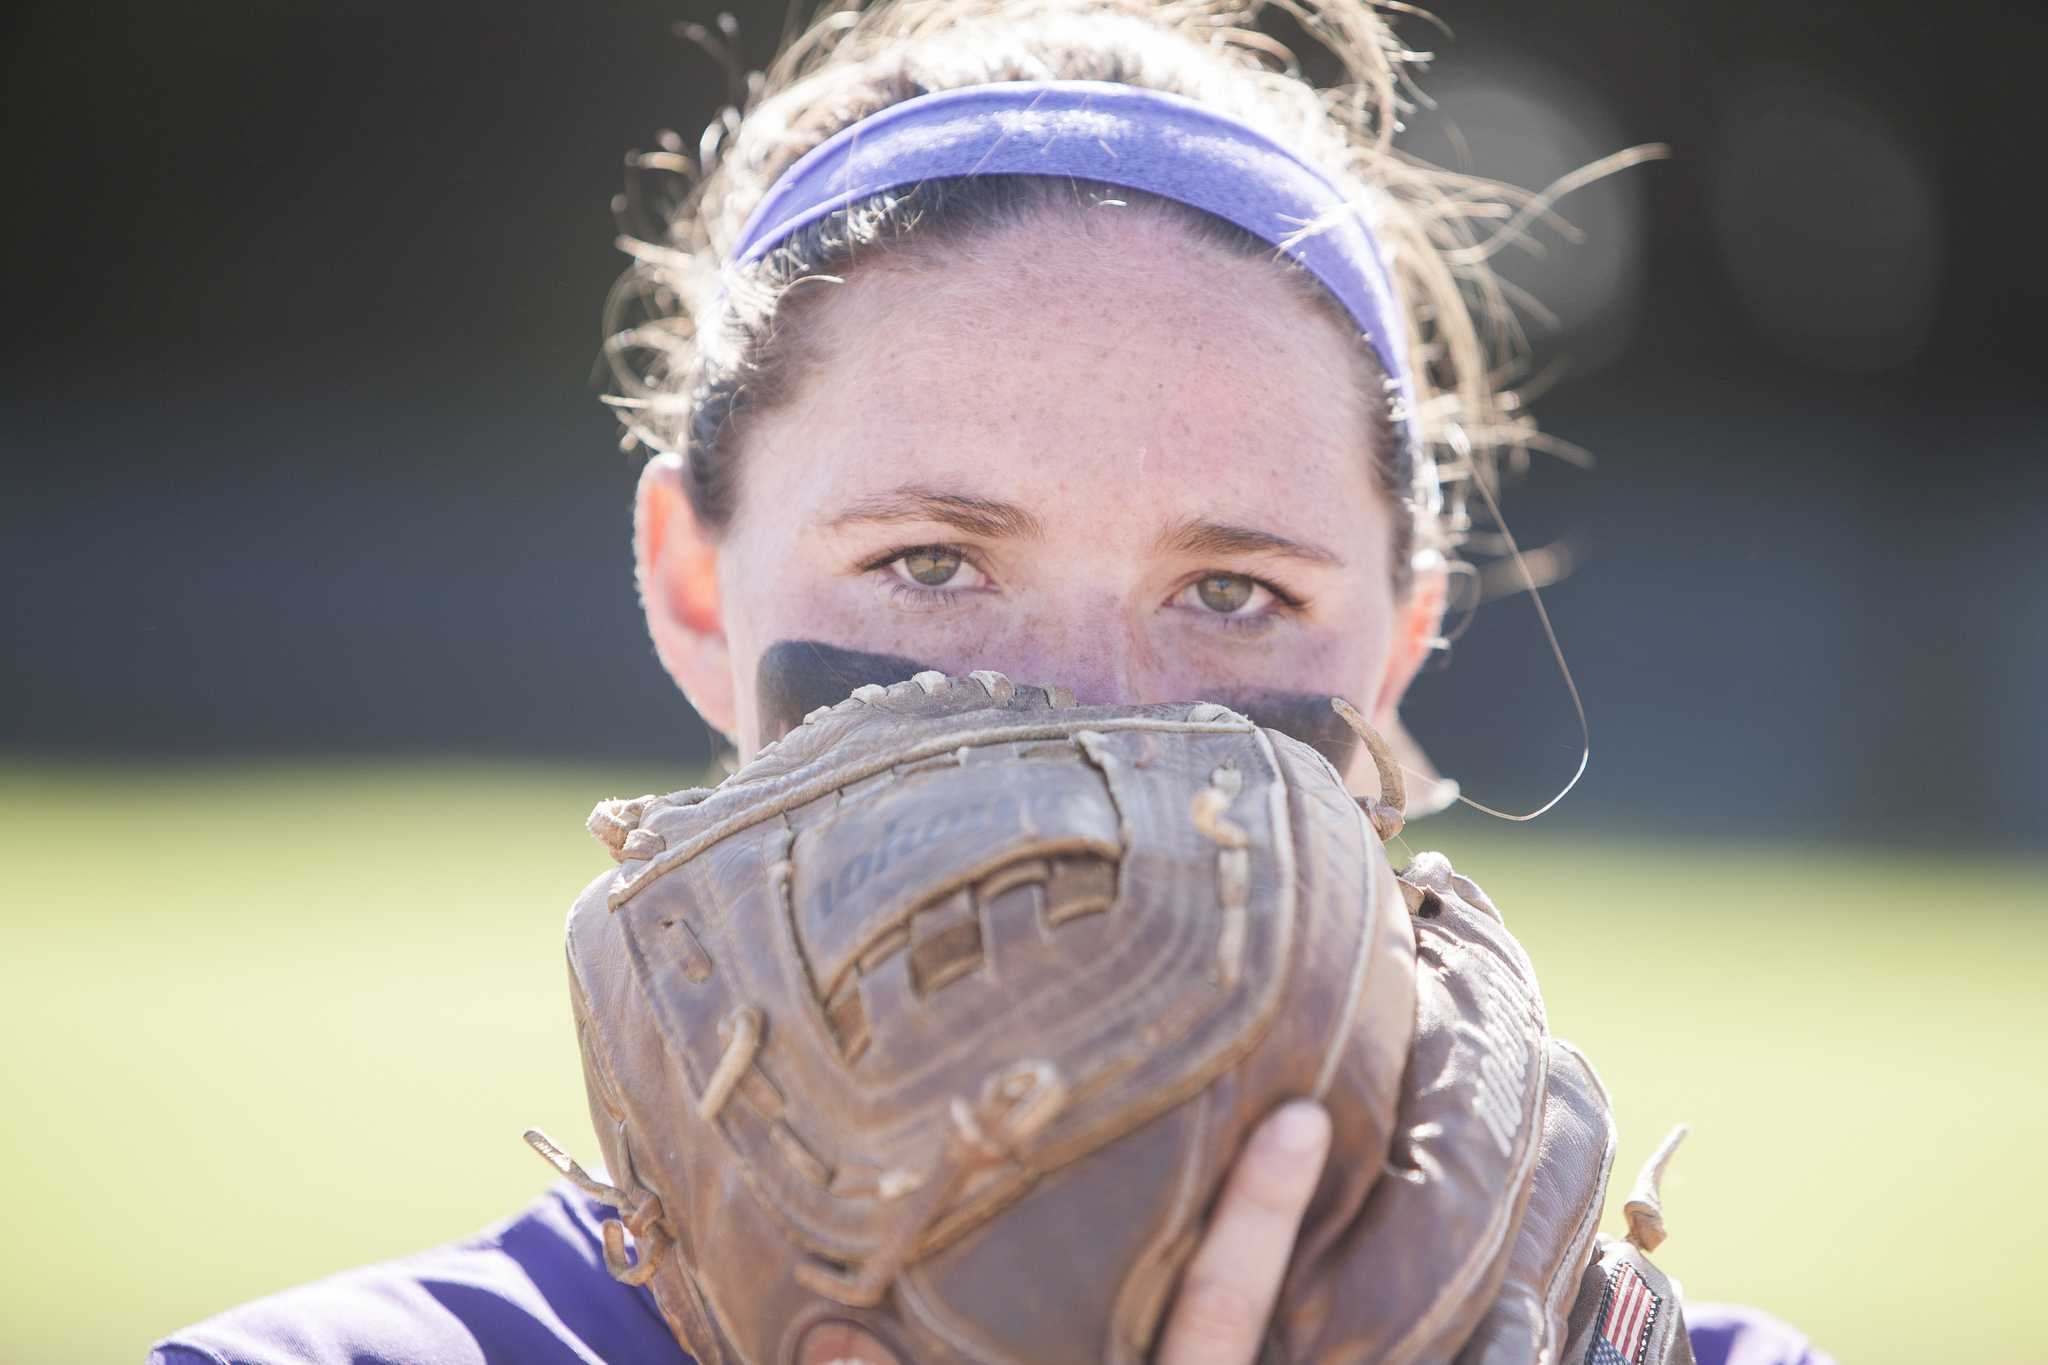 Pitcher Megan Clark, a sophmore communications major, Sat. April 24, 2015. (Martin Bustamante / Xpress)